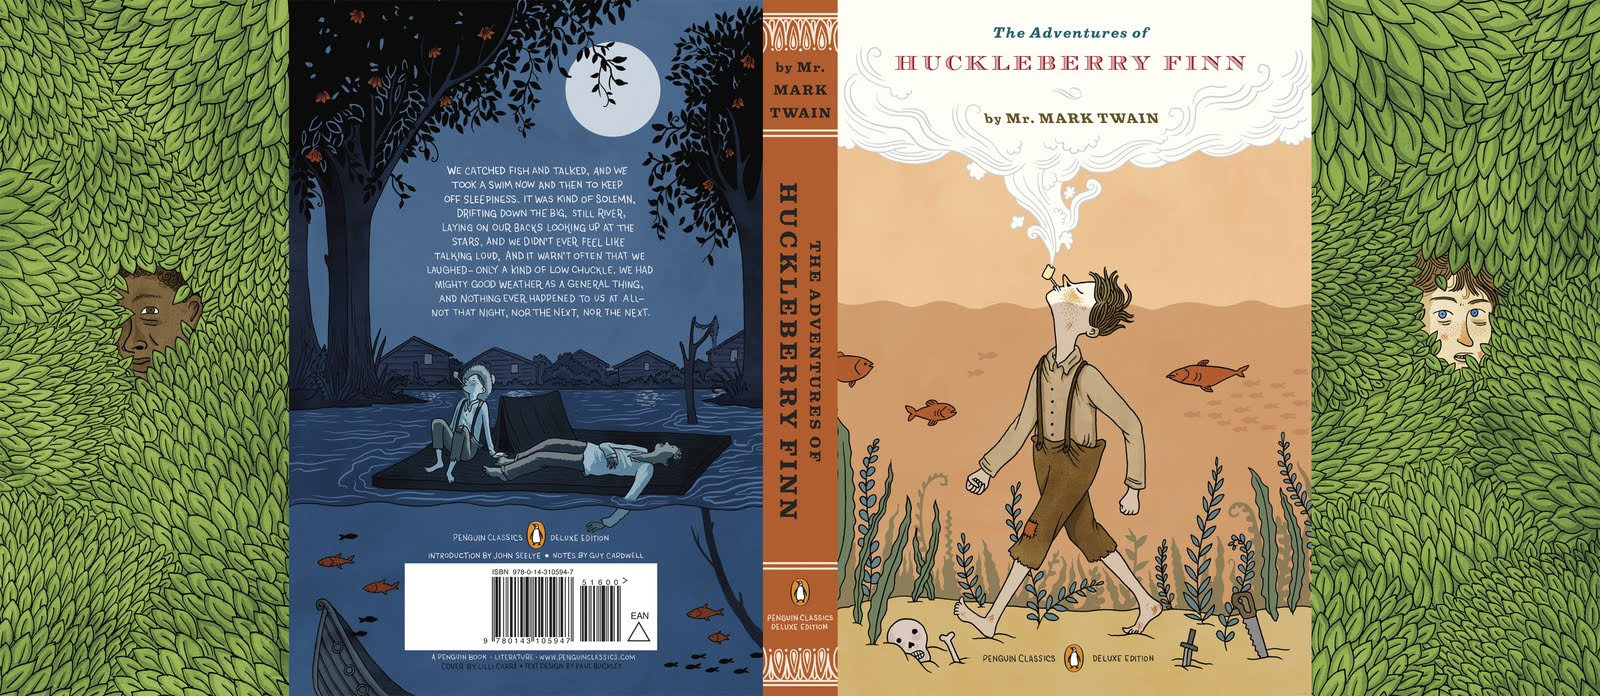 the adventures of huckleberry finn 23 essay The adventures of huckleberry finn has been labelled as a picaresque novel a picaresque novel is an adventure story that involves an anti-hero or picaro who wanders around with no actual destination in mind.